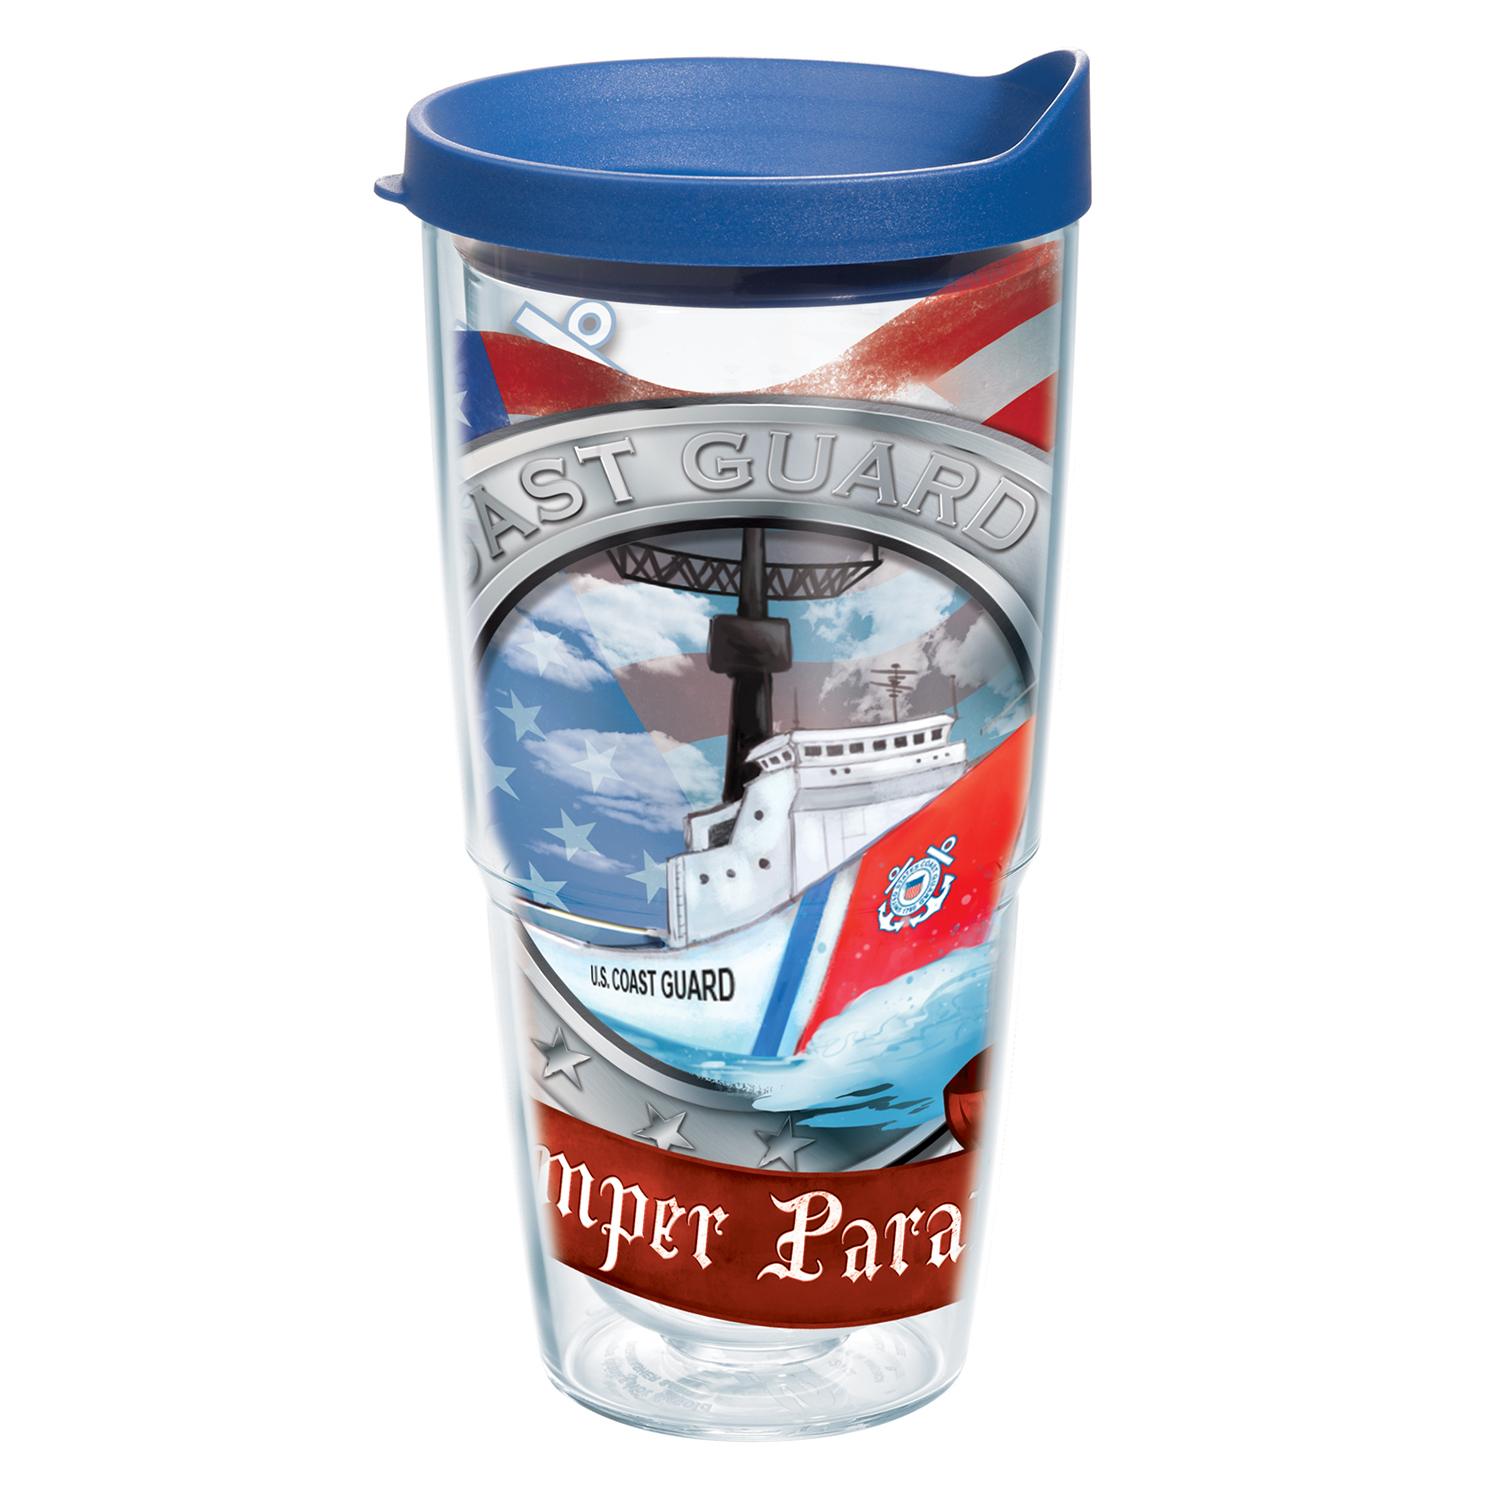 Tervis US Coast Guard Tumbler